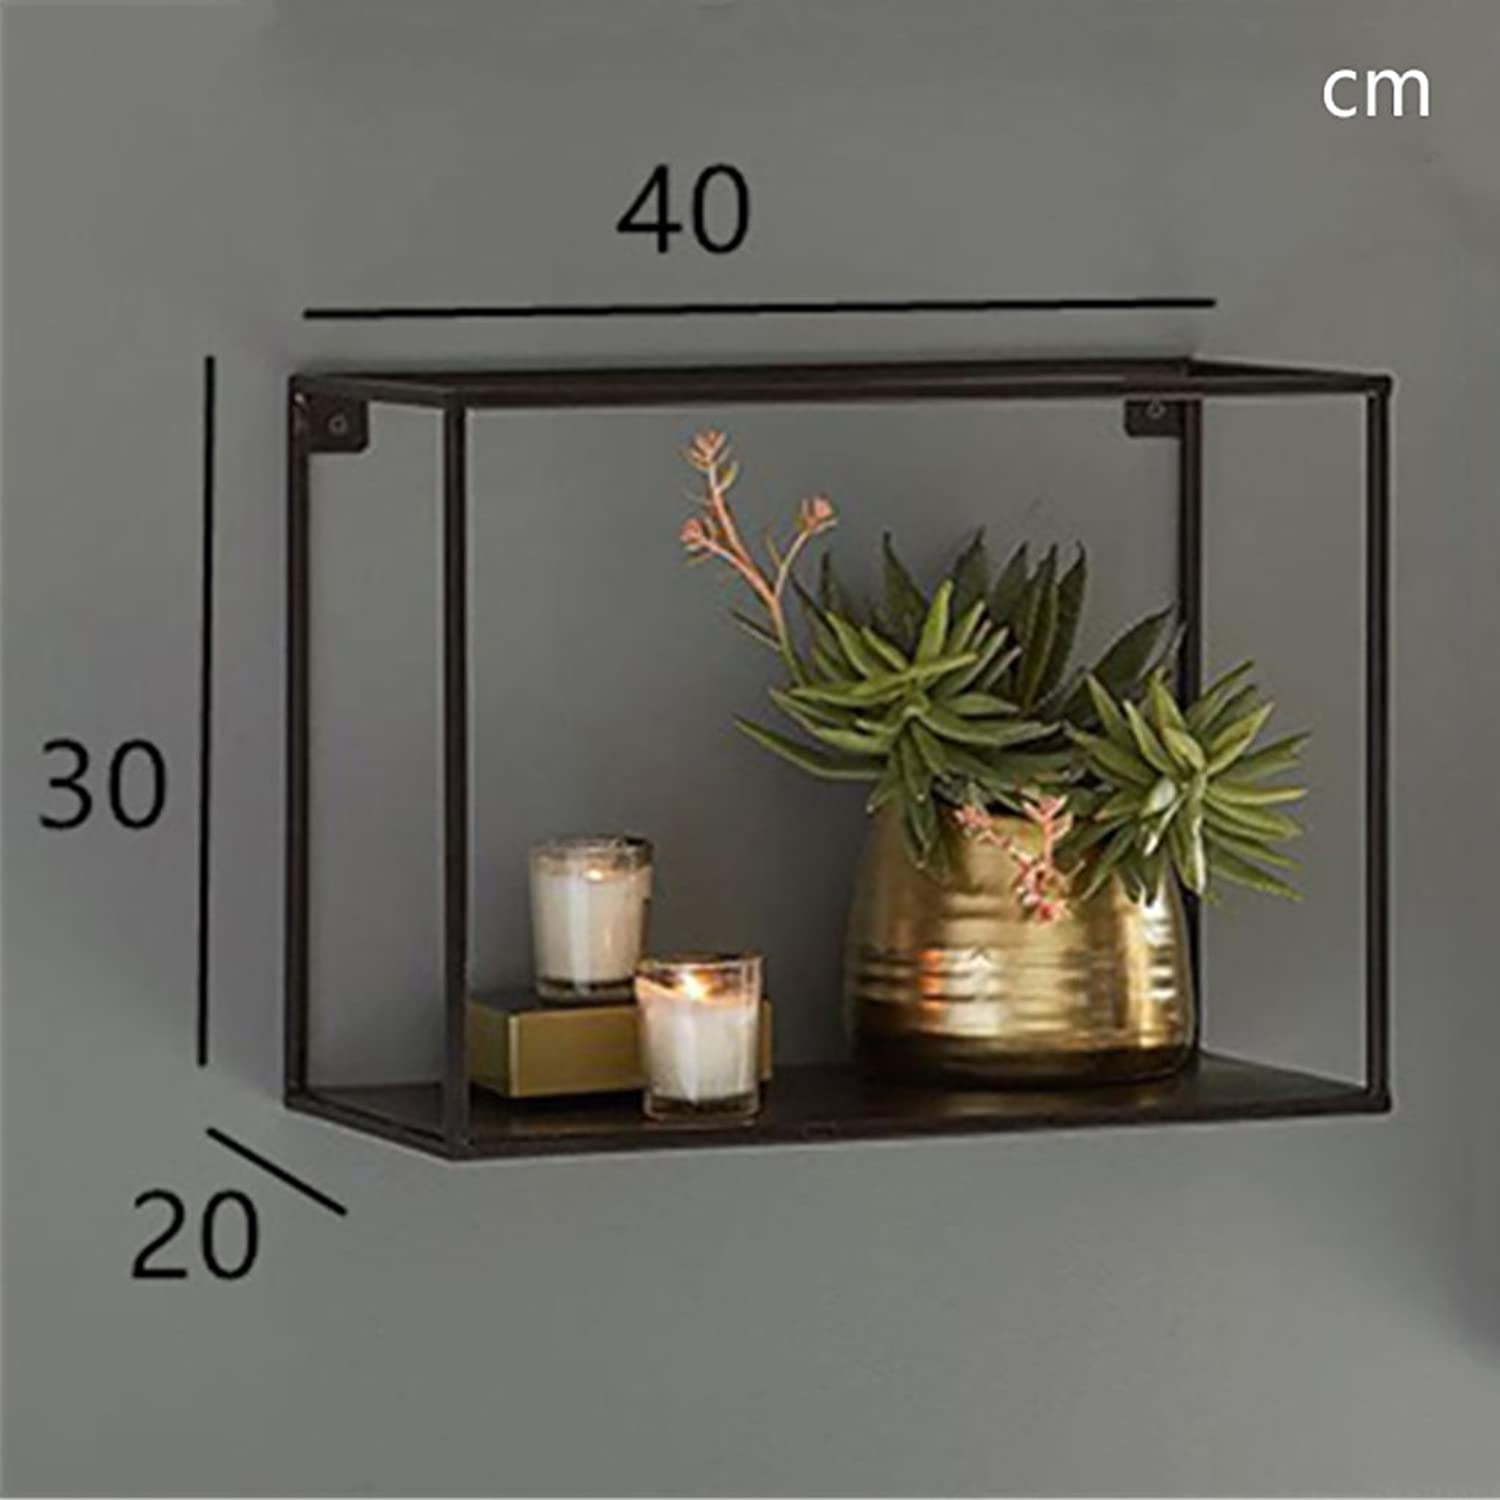 Retro Bookshelf Mounted Display Bookshelf Wall Decoration Bedroom Living Room Shelves Square Iron Wall Frame Retro ( color   A2 )